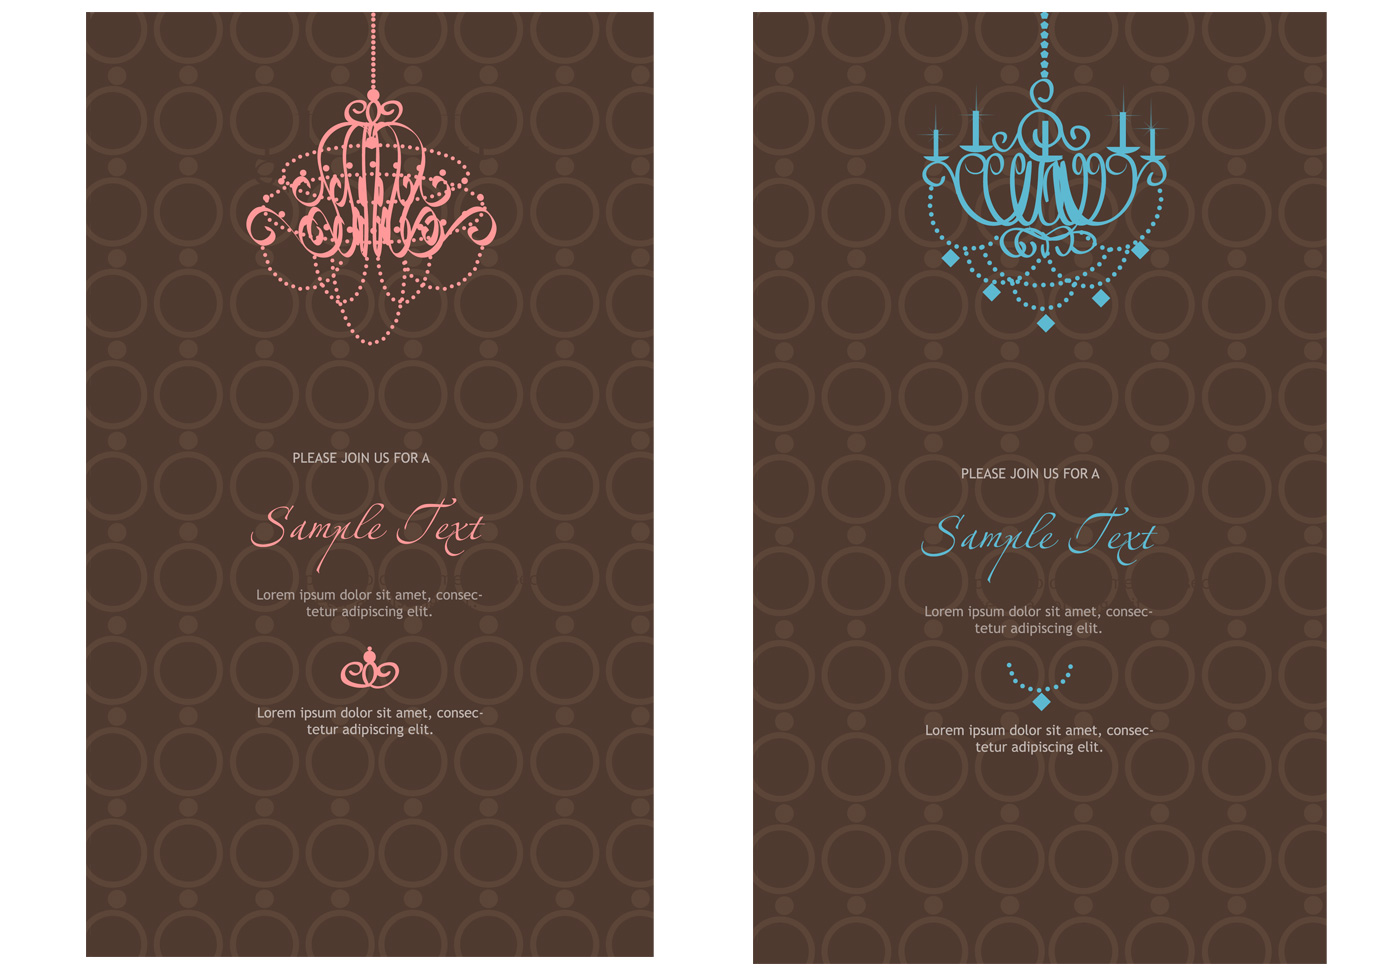 Photoshop Templates: Elegant Photoshop Invitation